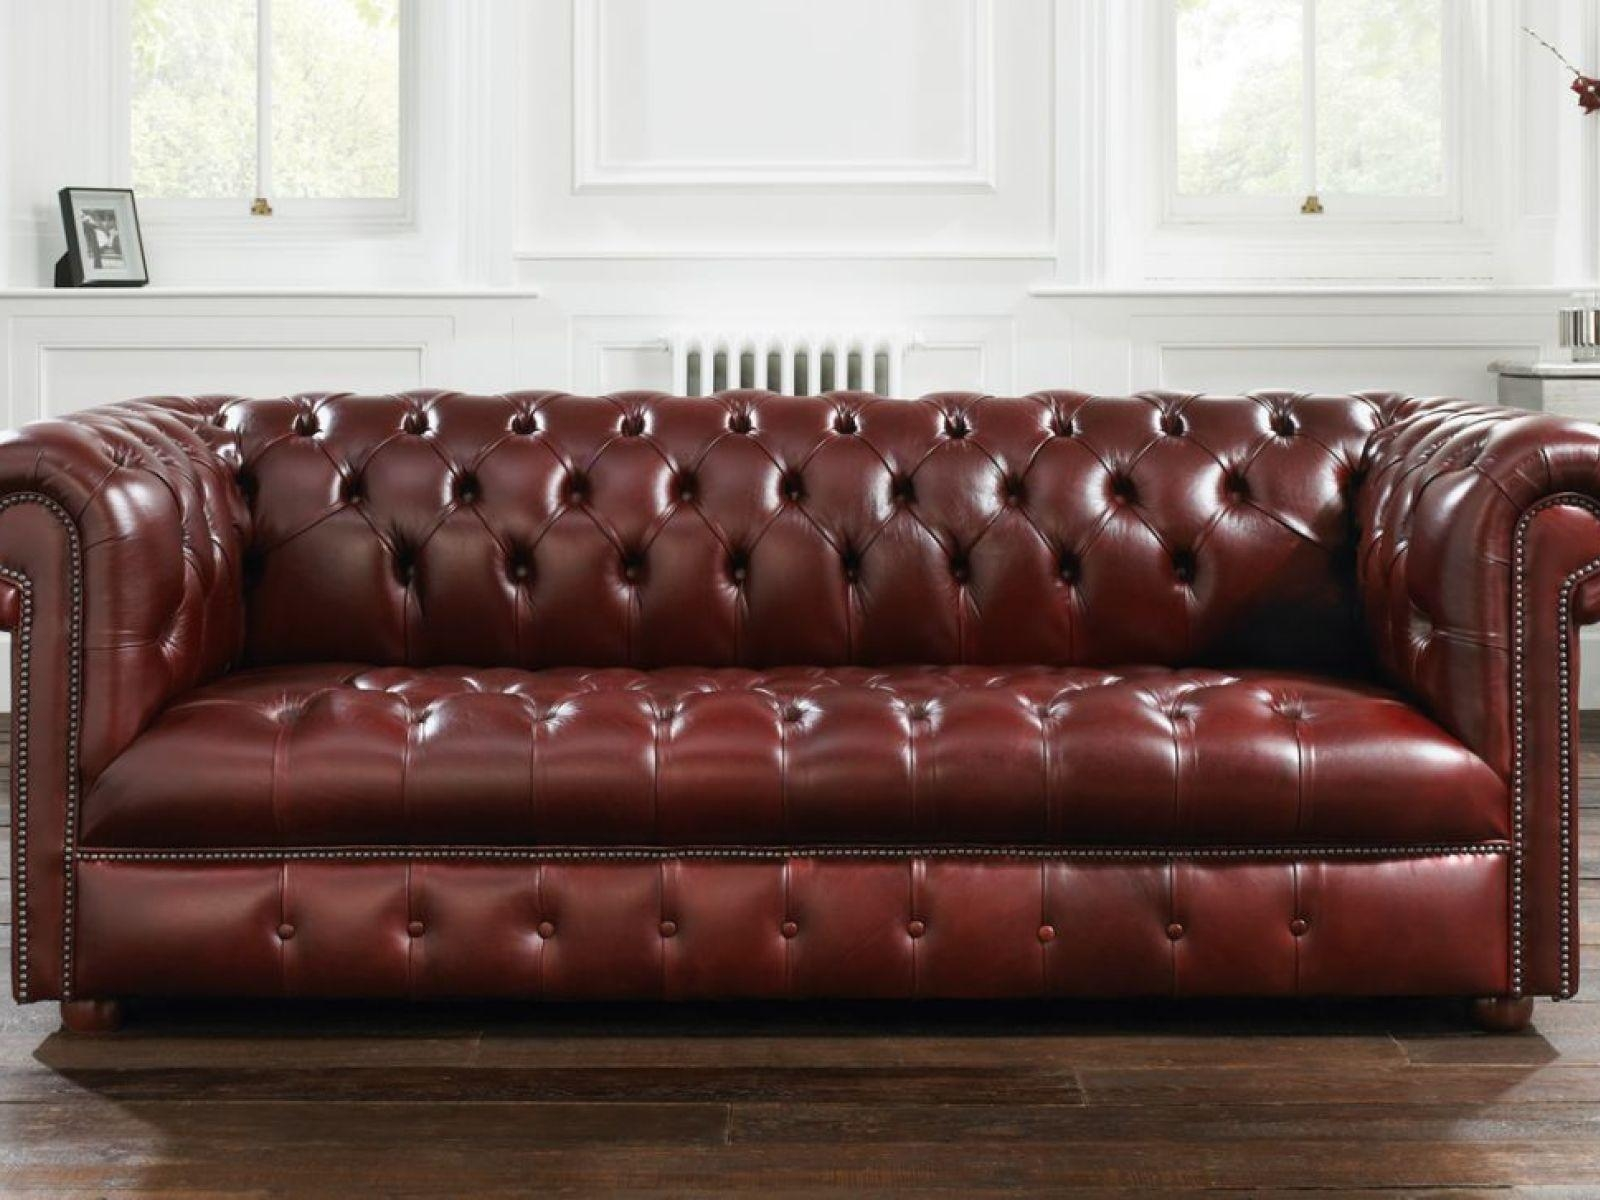 ▻ Sofa : 3 Living Room Focus On Luxury Red Leather Chesterfield Intended For Dark Red Leather Sofas (View 7 of 20)